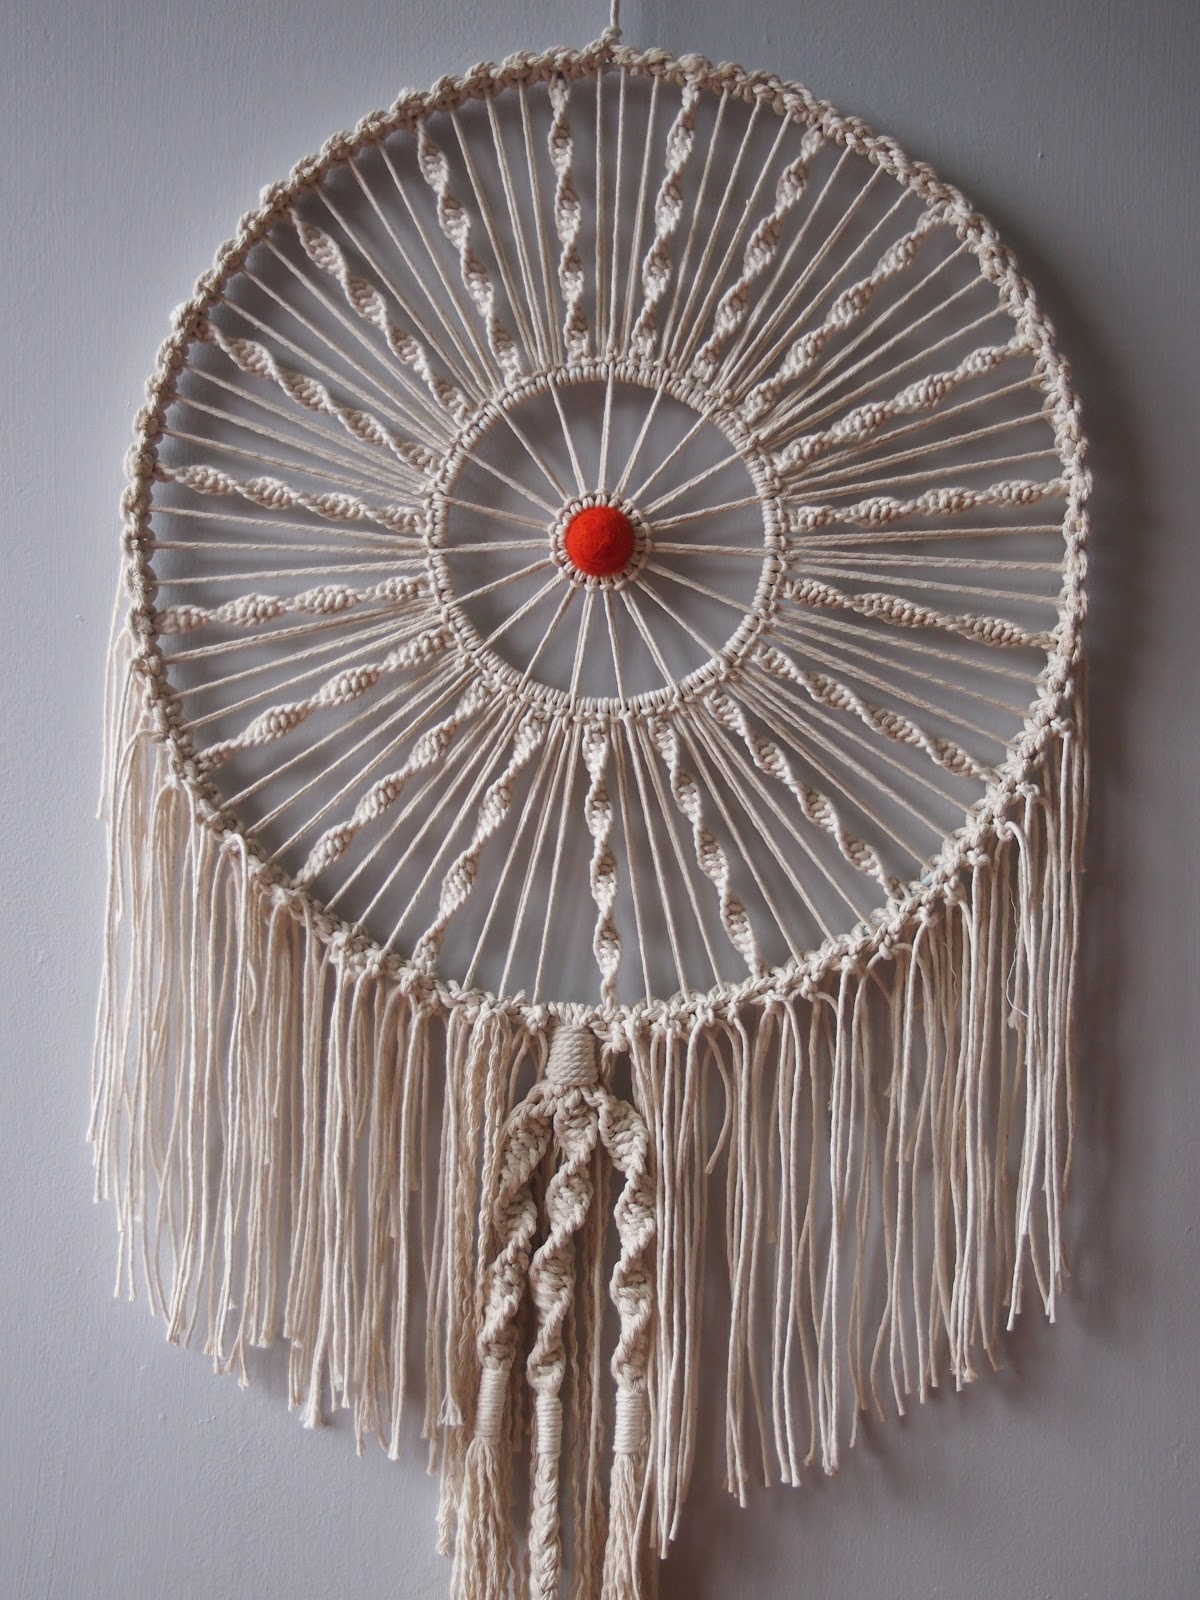 stuff that makes my heart beat faster: Macrame revisited